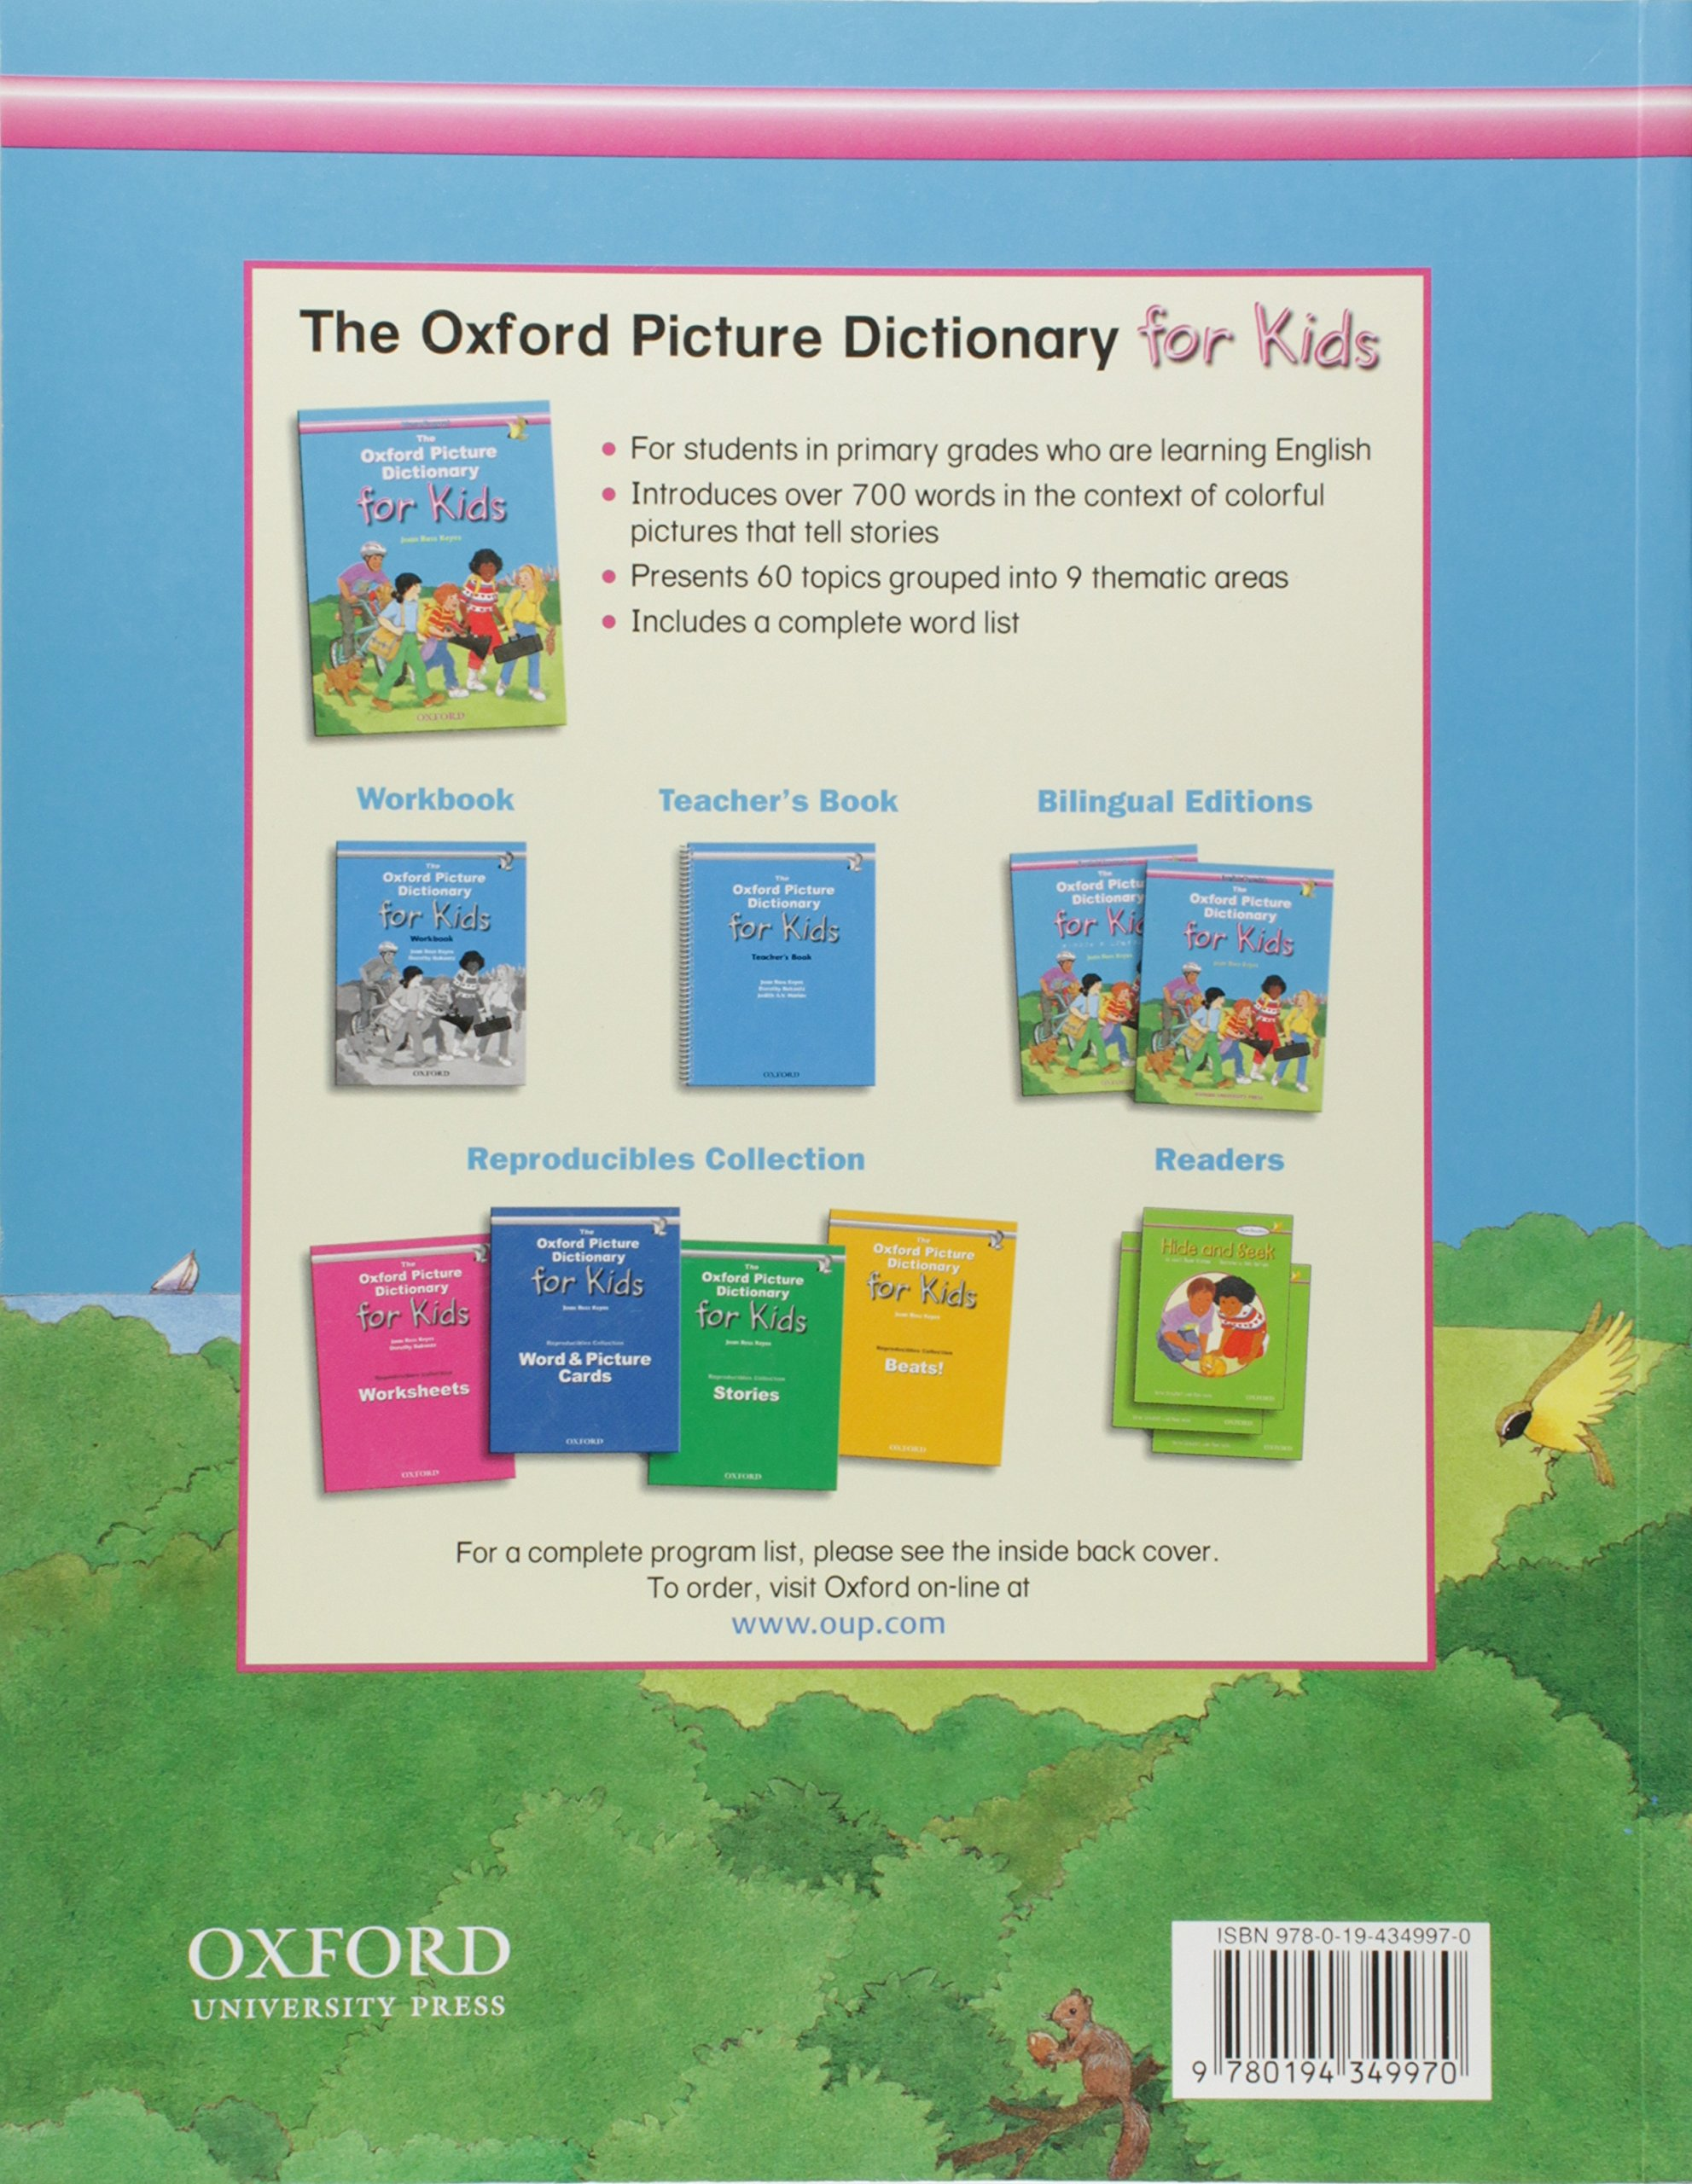 The Oxford Picture Dictionary for Kids (Monolingual English Edition)